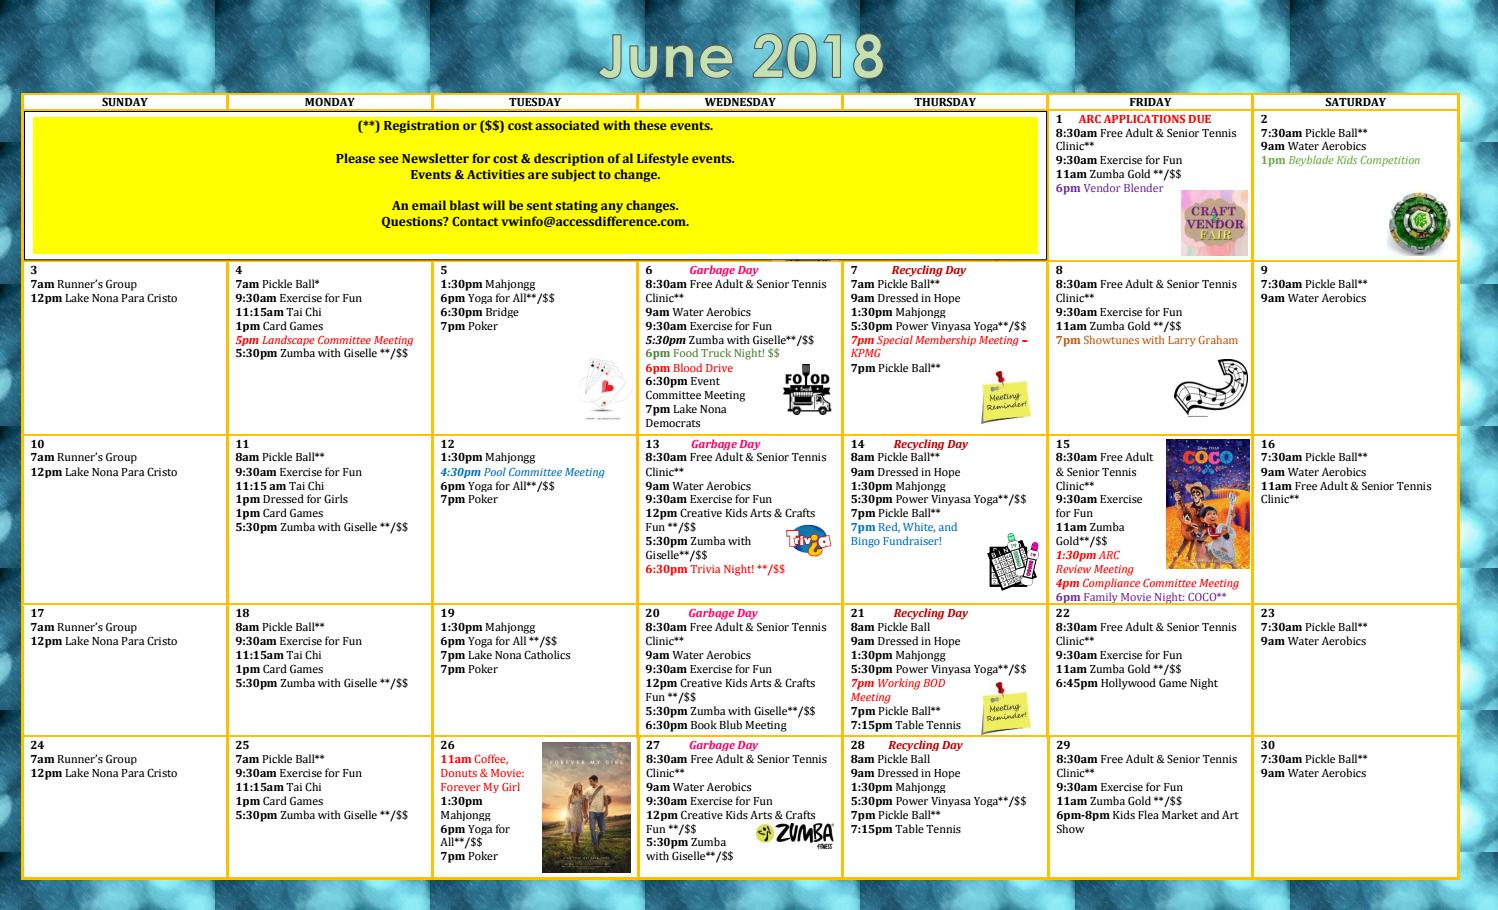 June calendar 2018 updated 5 31 2018 by VillageWalk at Lake